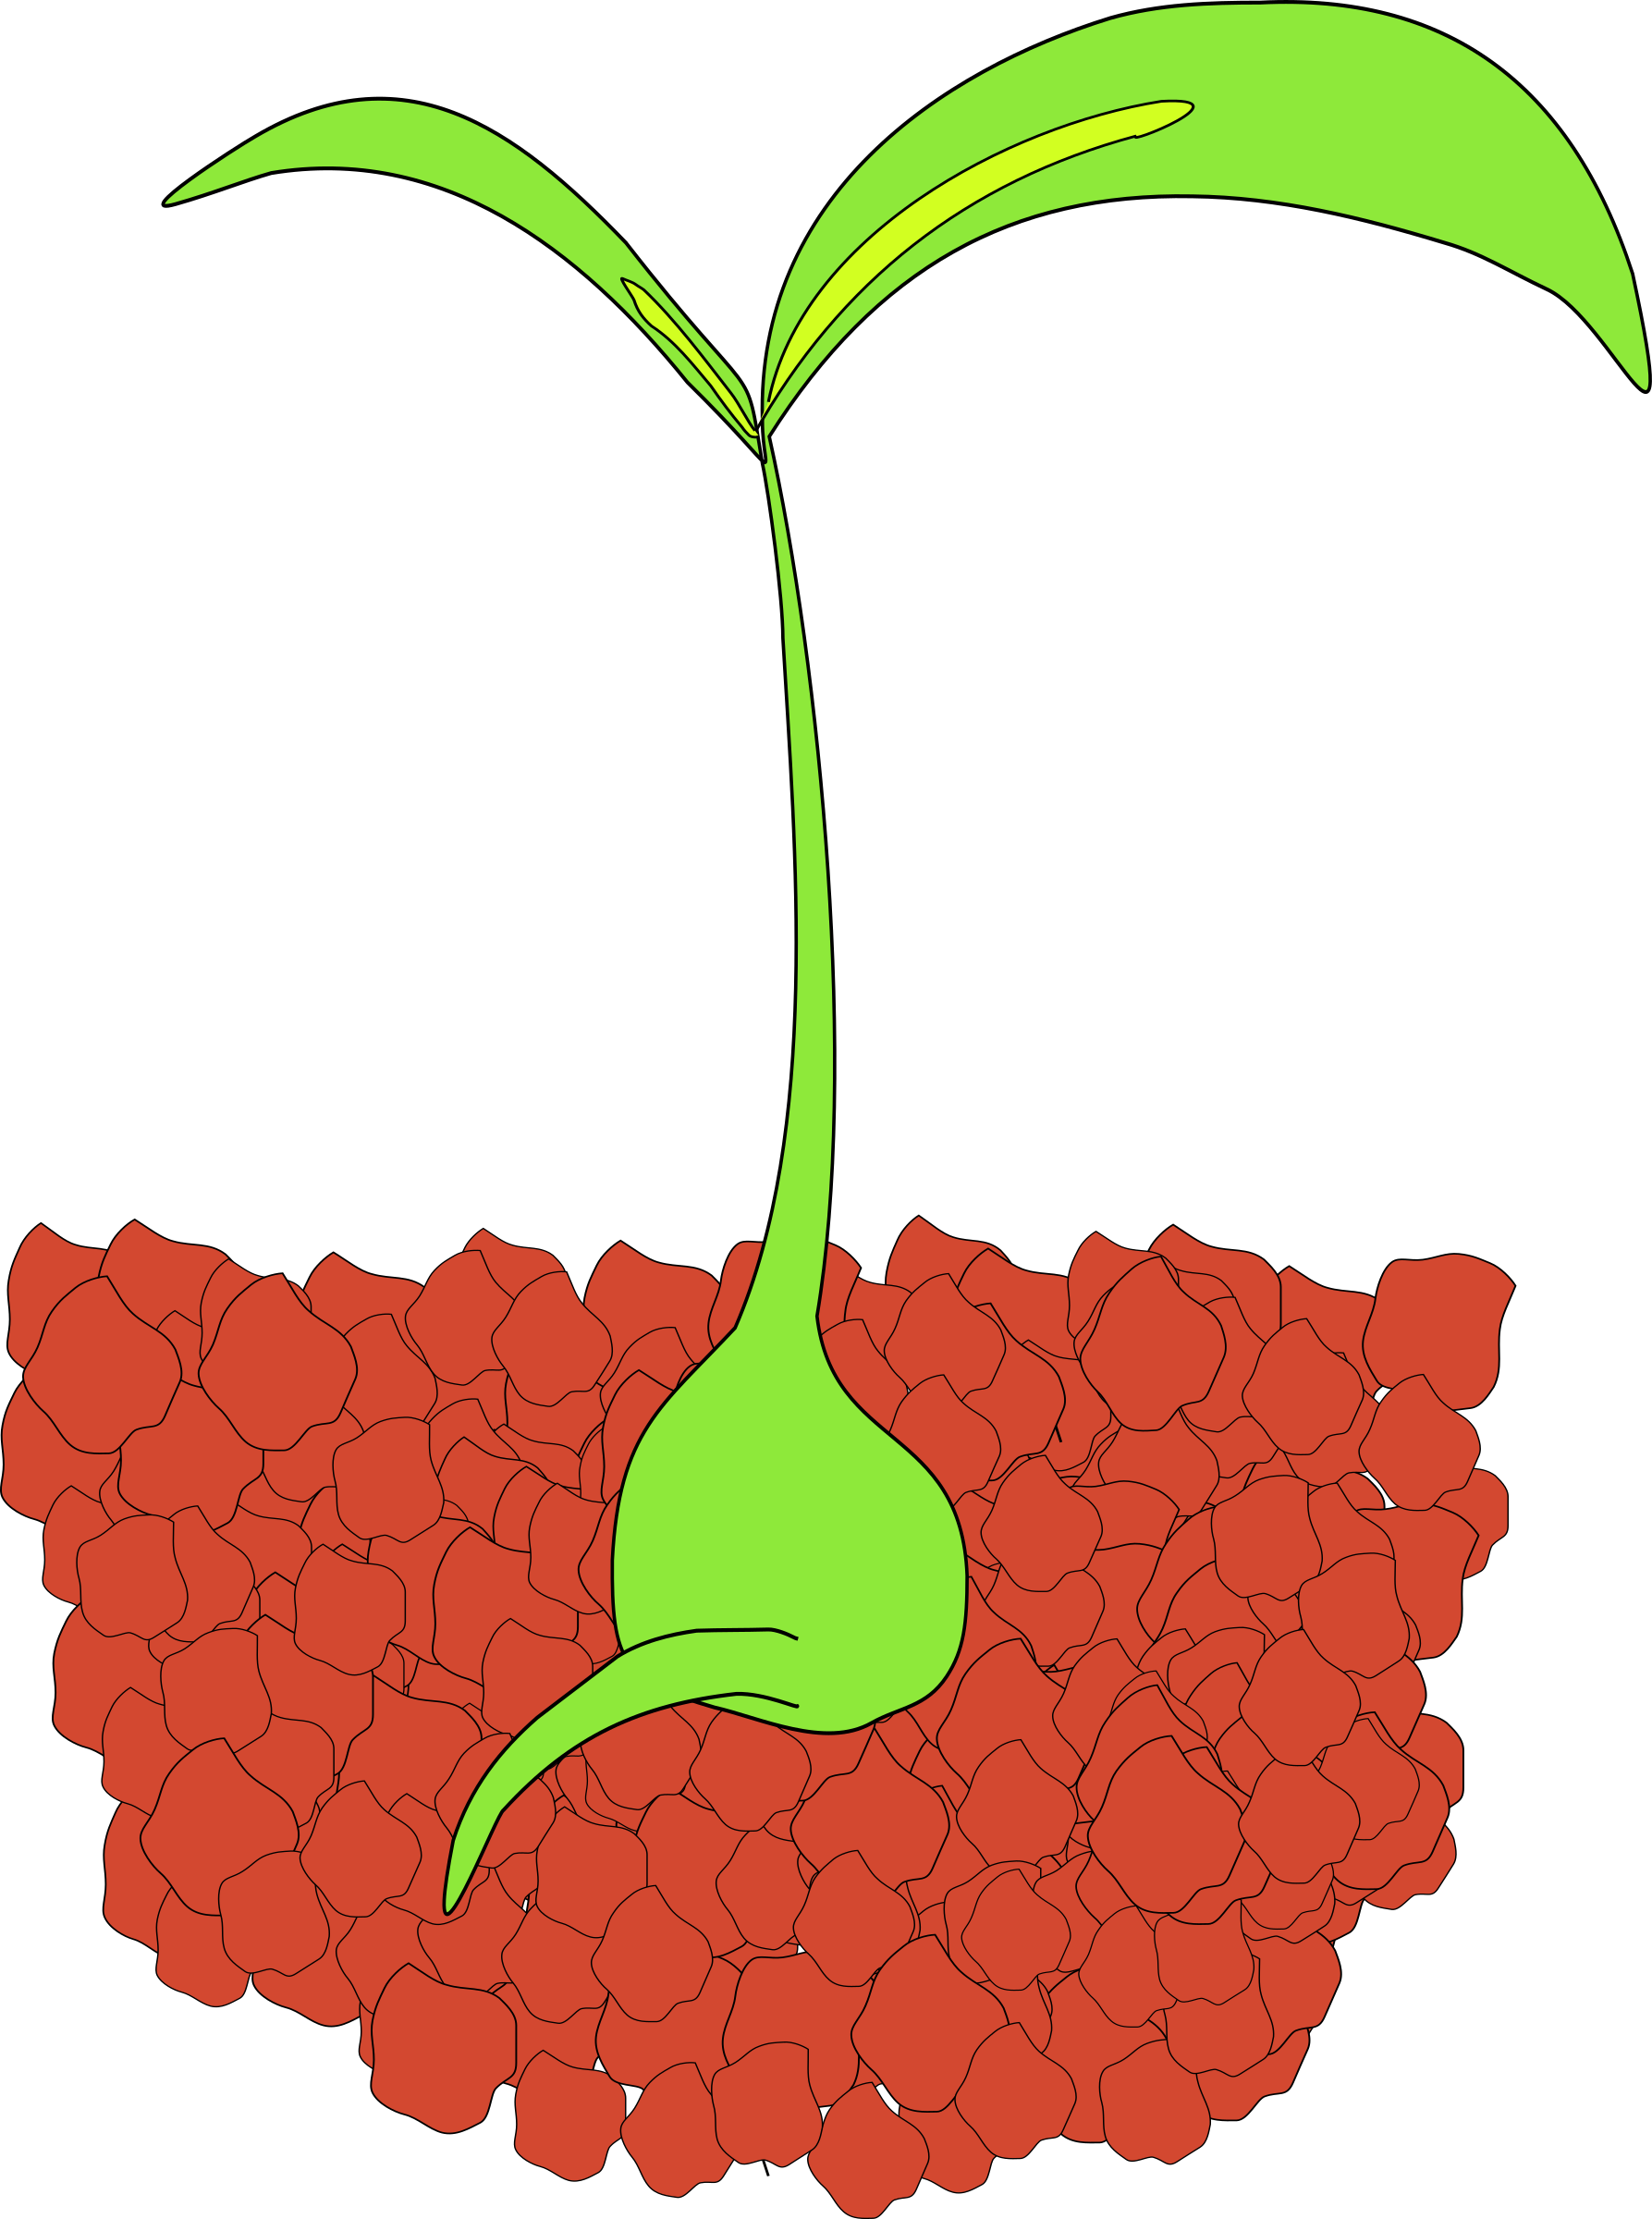 Gardening clipart plant seedling. Dirt pencil and in